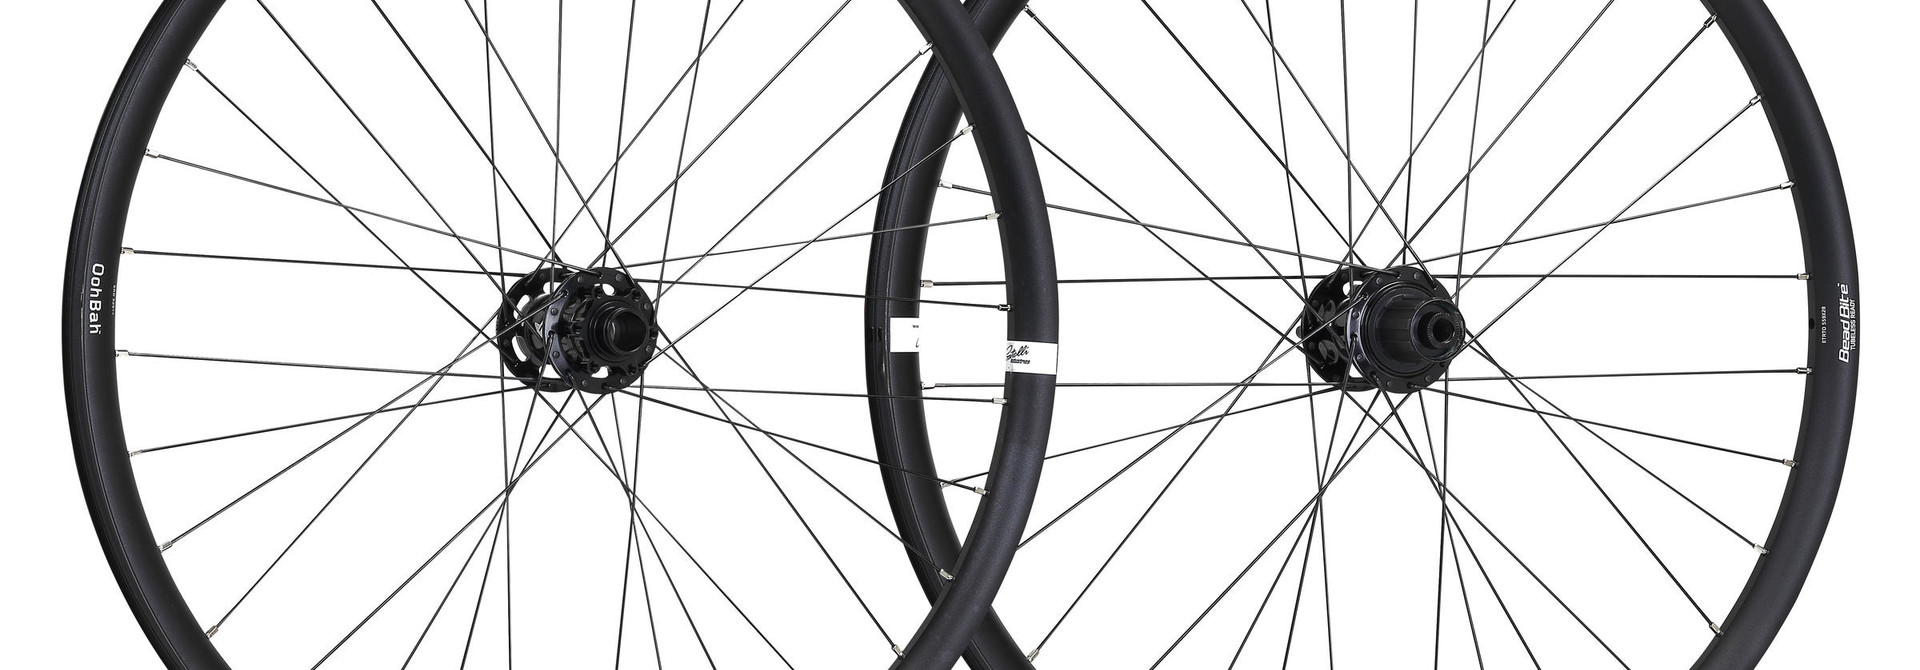 Spank Spike 33 Wheelset 27.5 150/157 20x110